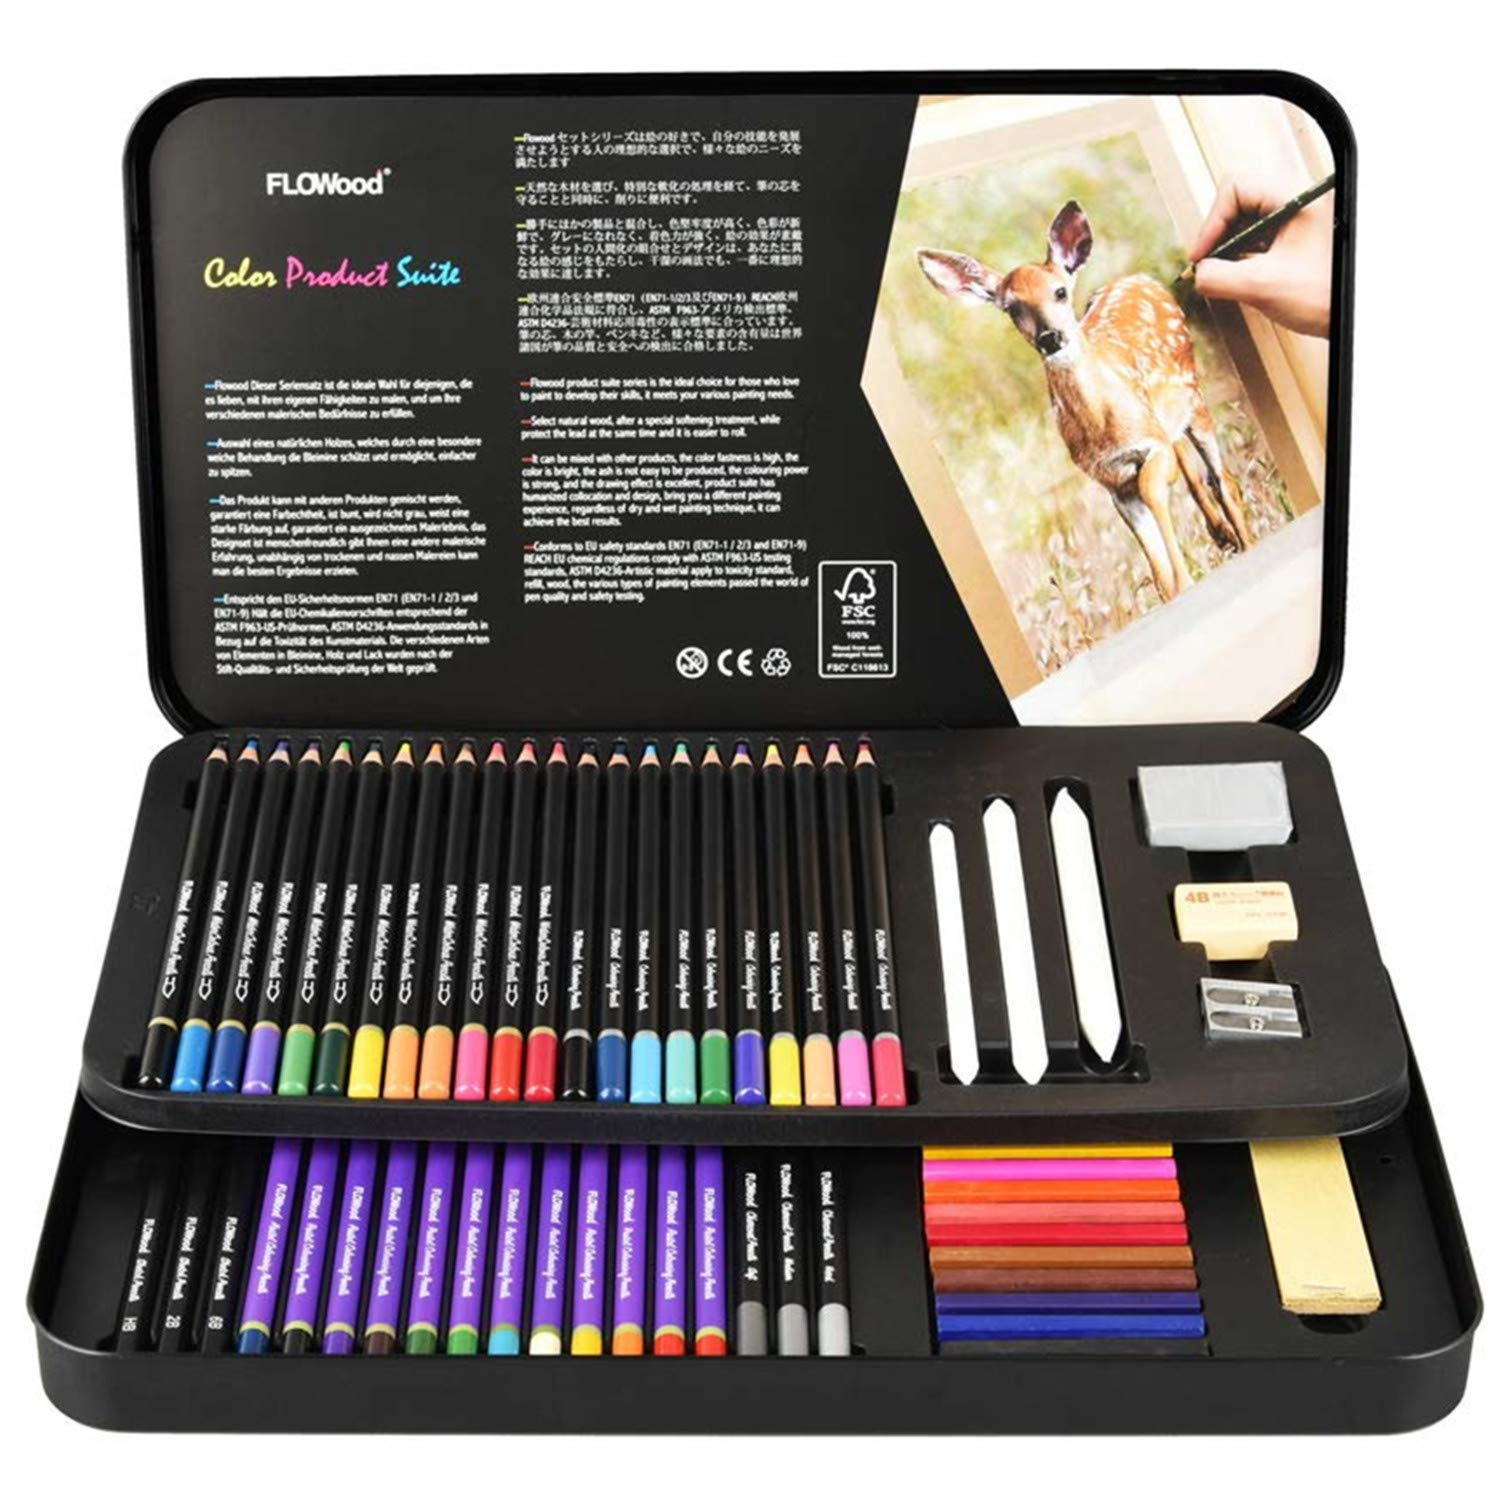 Flowood 63 Piece Art Supply Colored Pencils Set, Soft Core Watercolor Pencils for Art Kit for Kids, Teens and Adults with Pastel Pencils,Sketch Pencils,Pastels Sticks,Charcoal Pencils